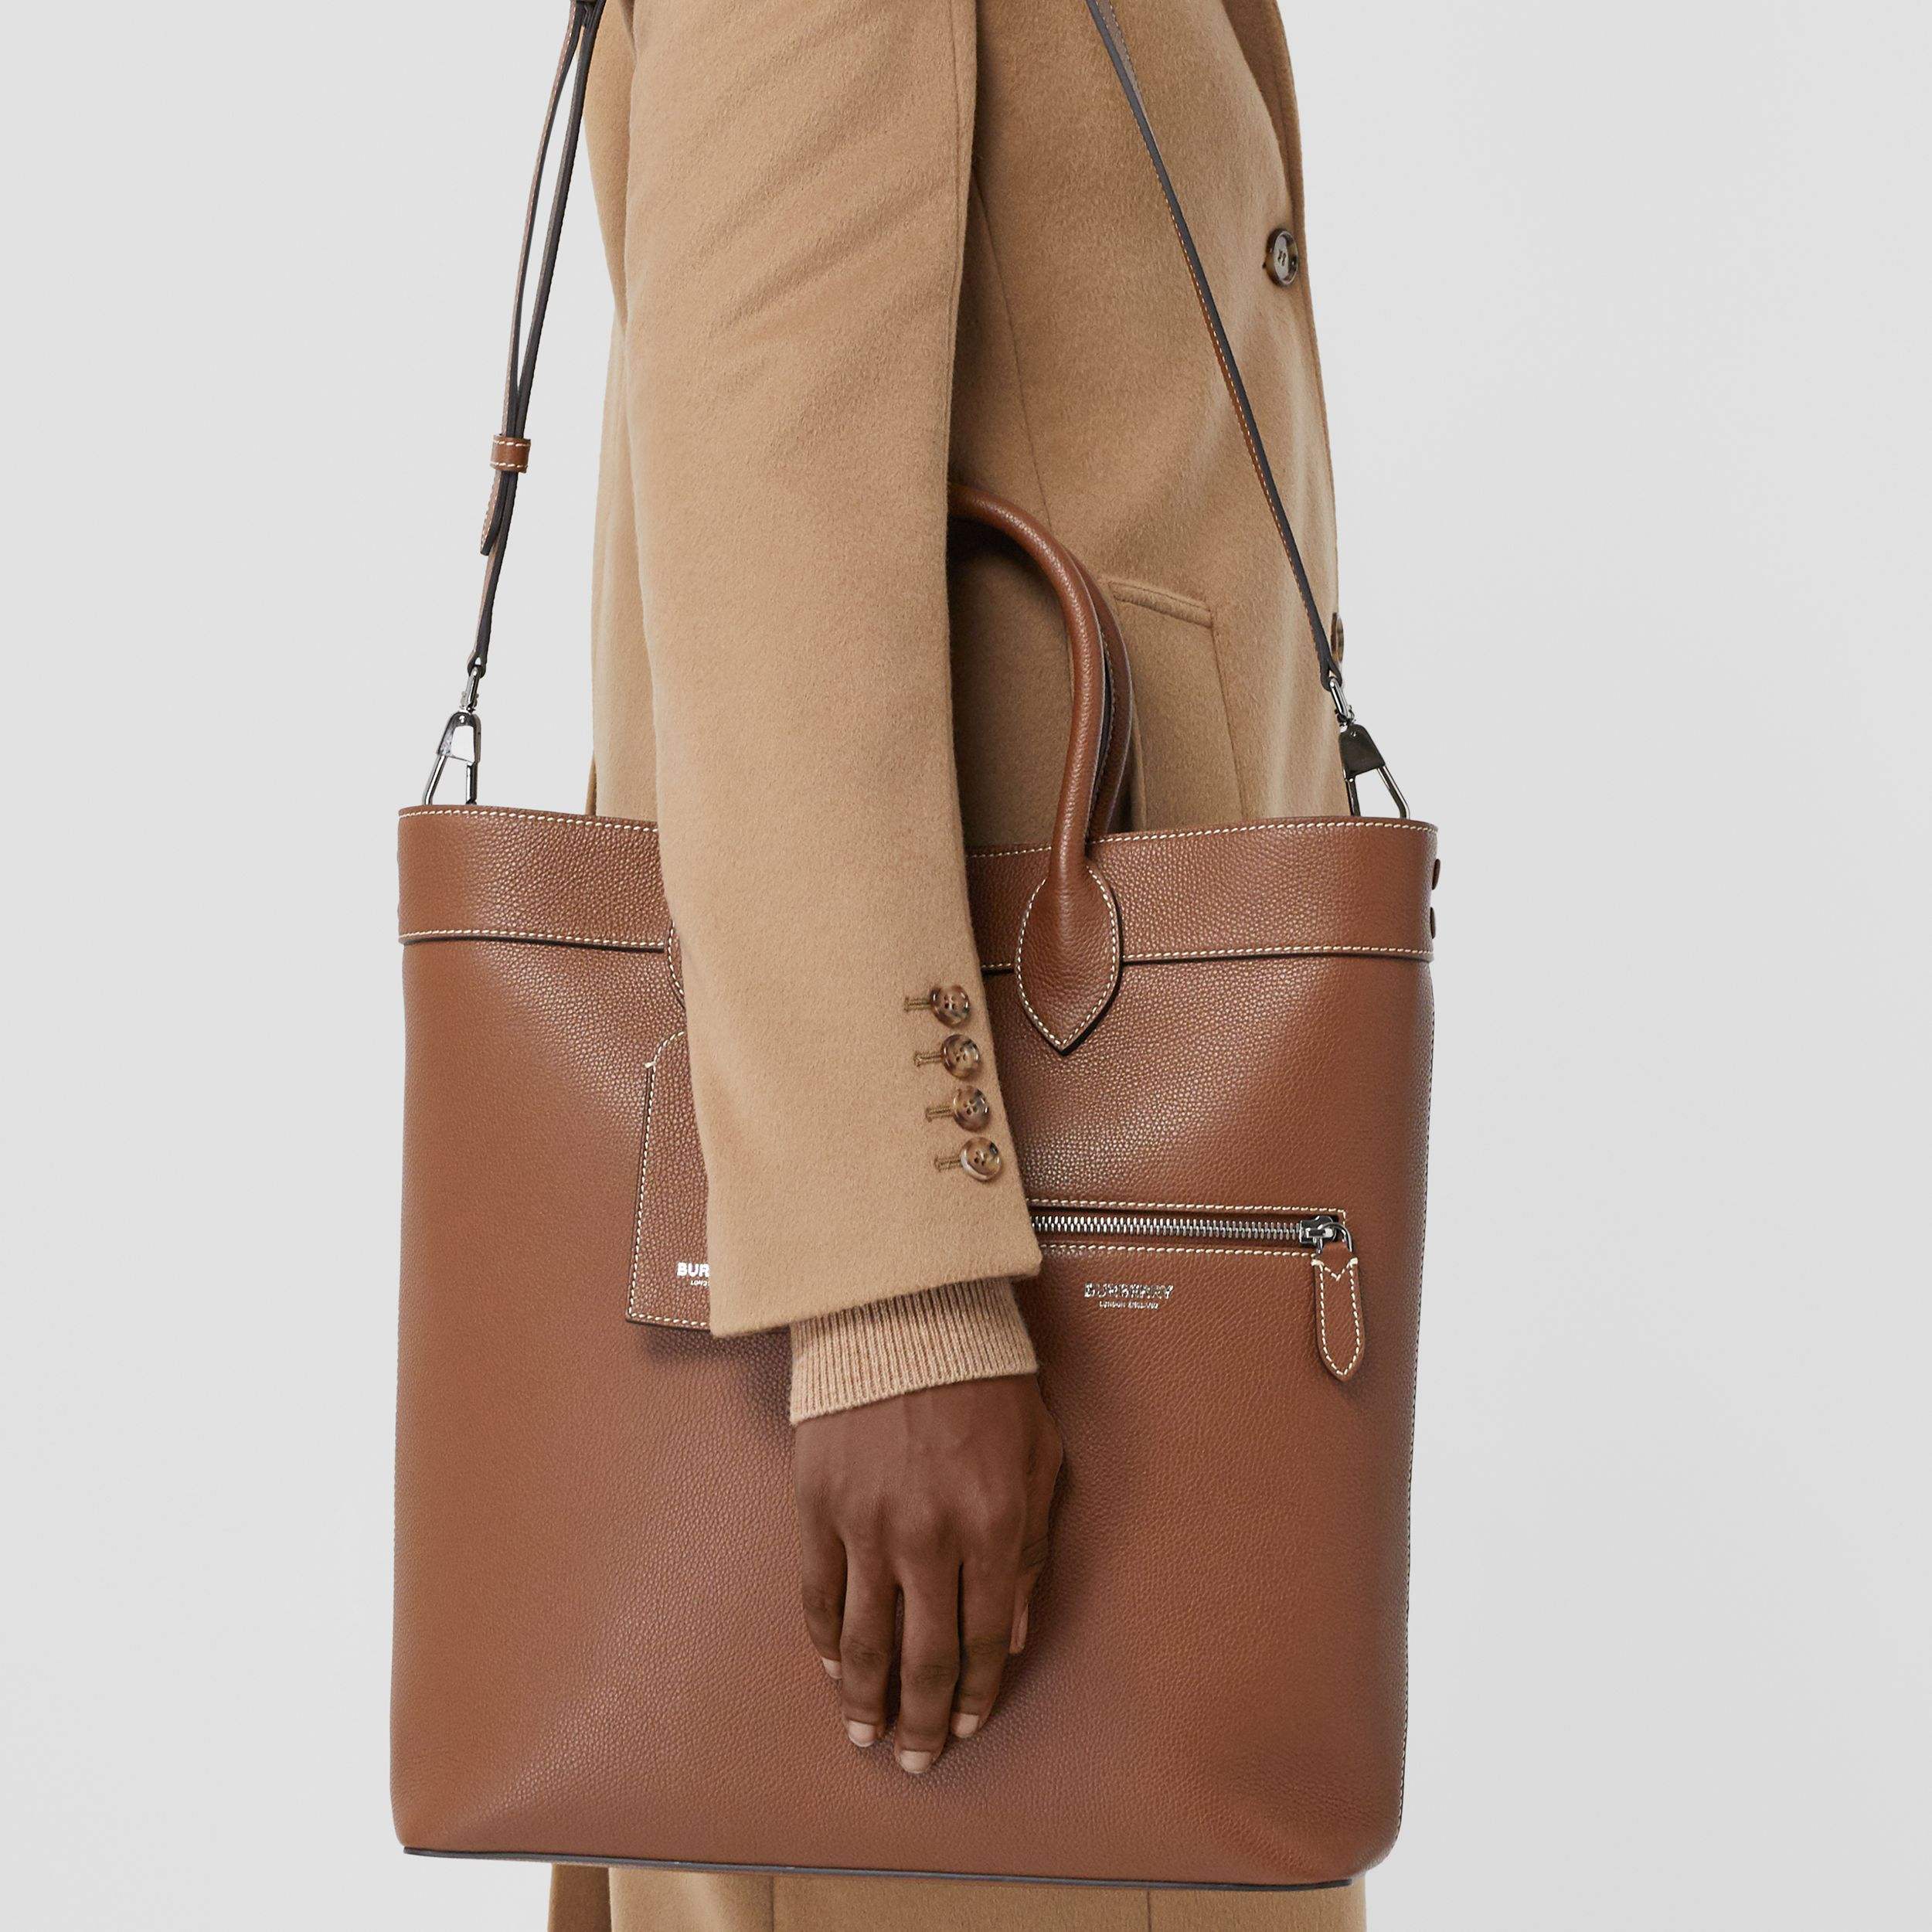 Grainy Leather Tote in Tan | Burberry - 3